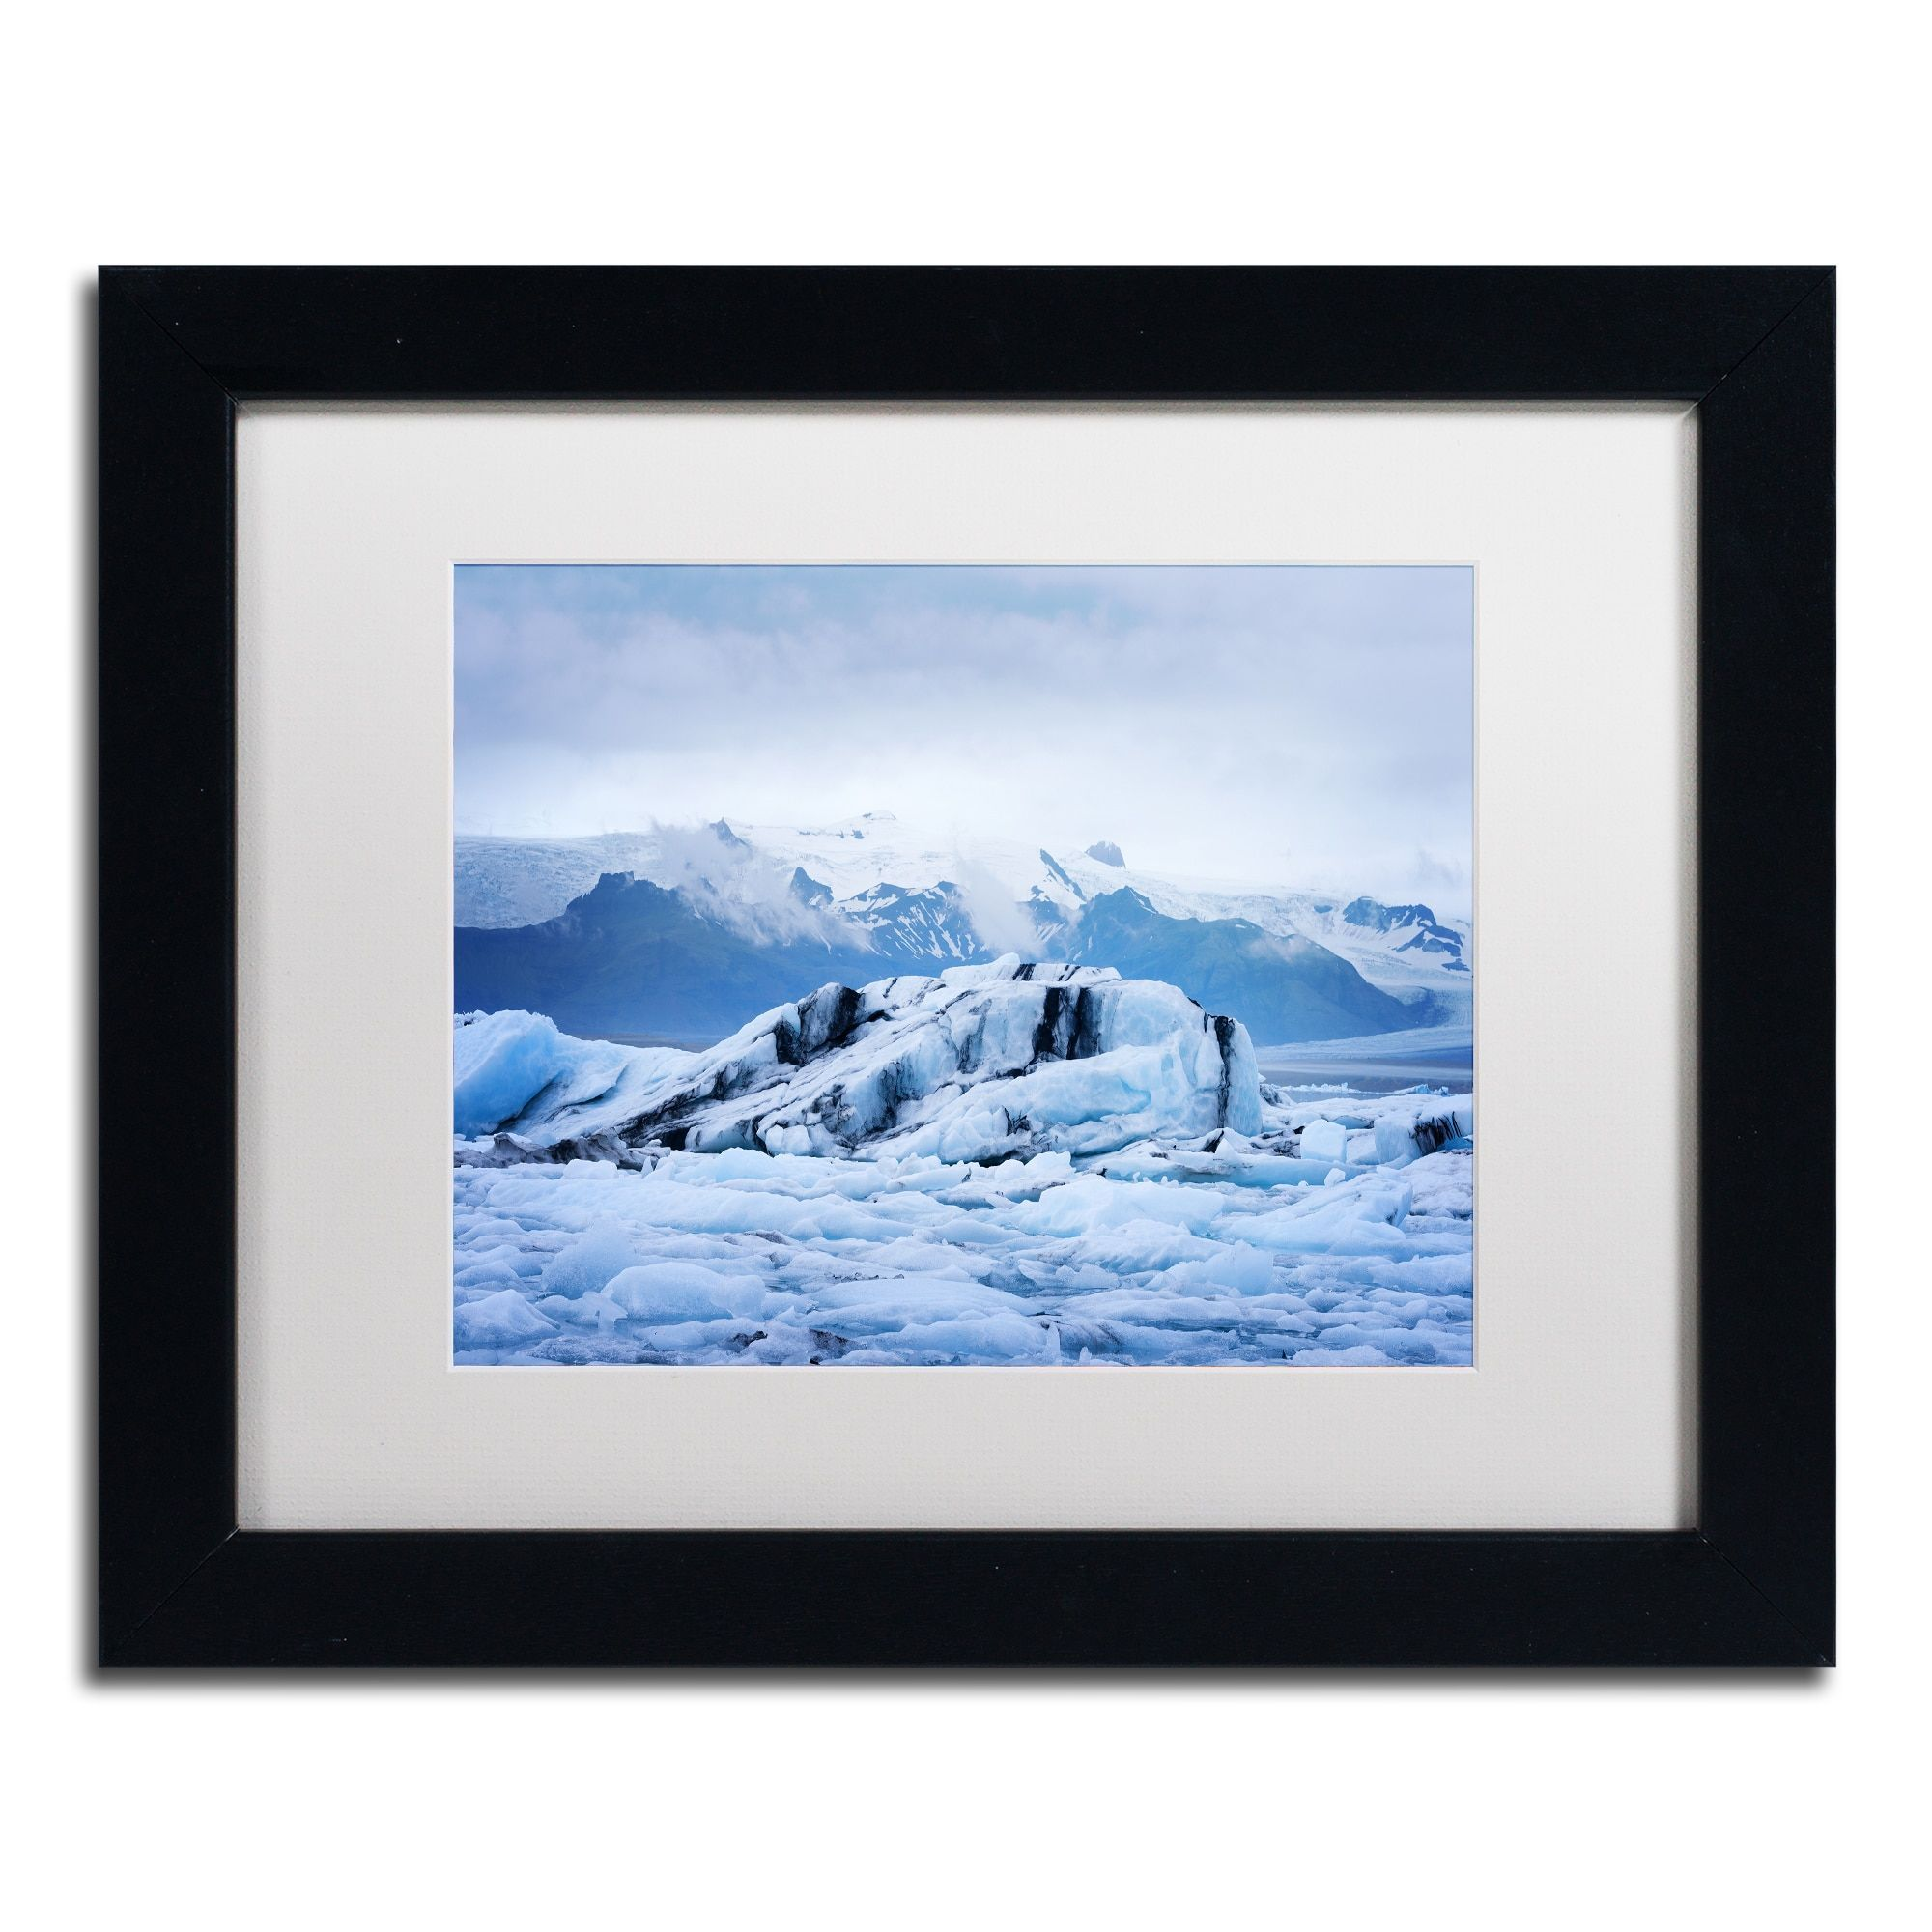 Philippe Sainte-Laudy 'Ice Planet' Matted Framed Art